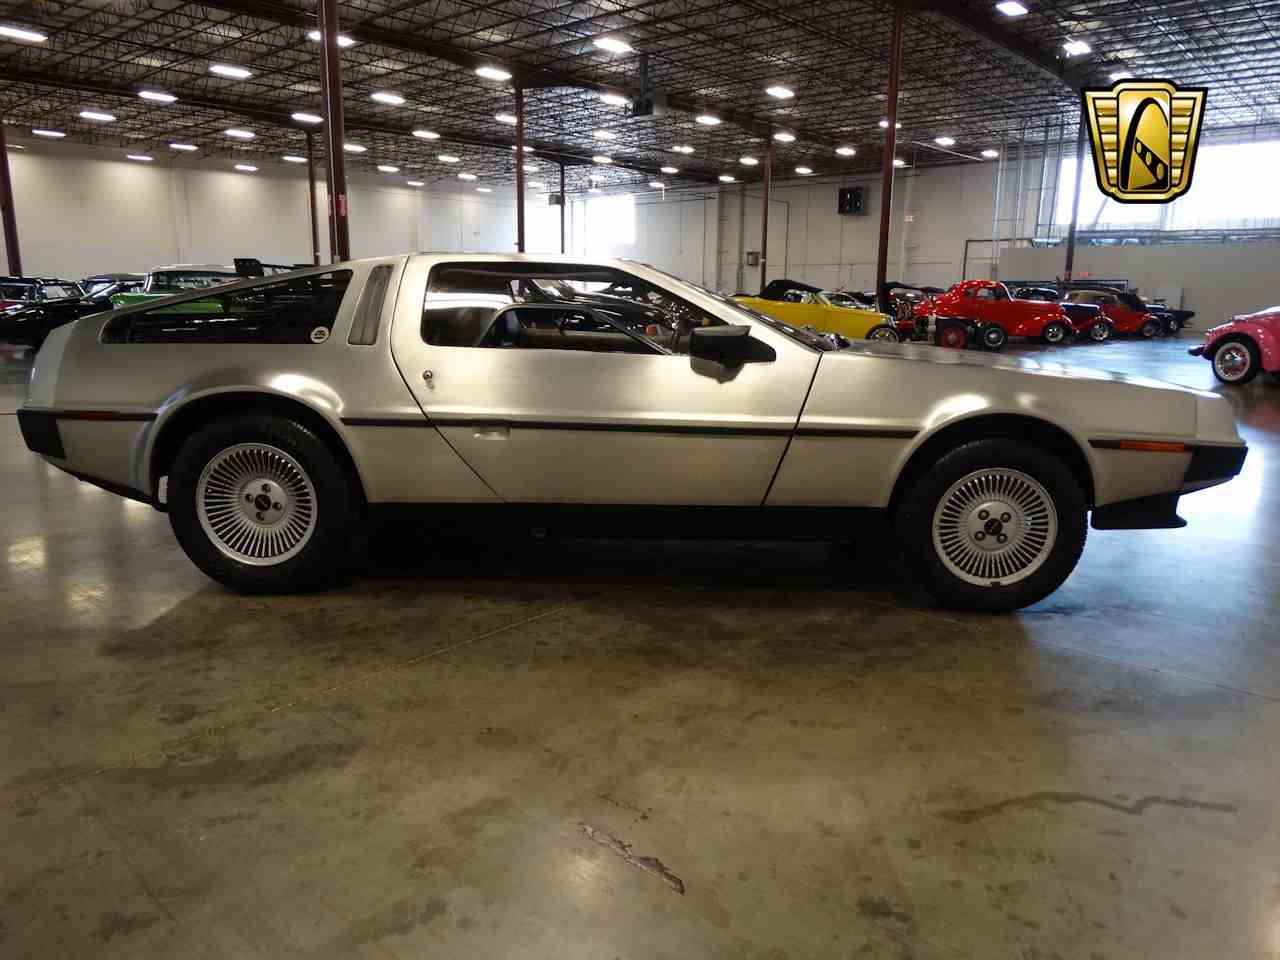 Large Picture of '81 DMC-12 located in La Vergne Tennessee - $29,995.00 - M2L4